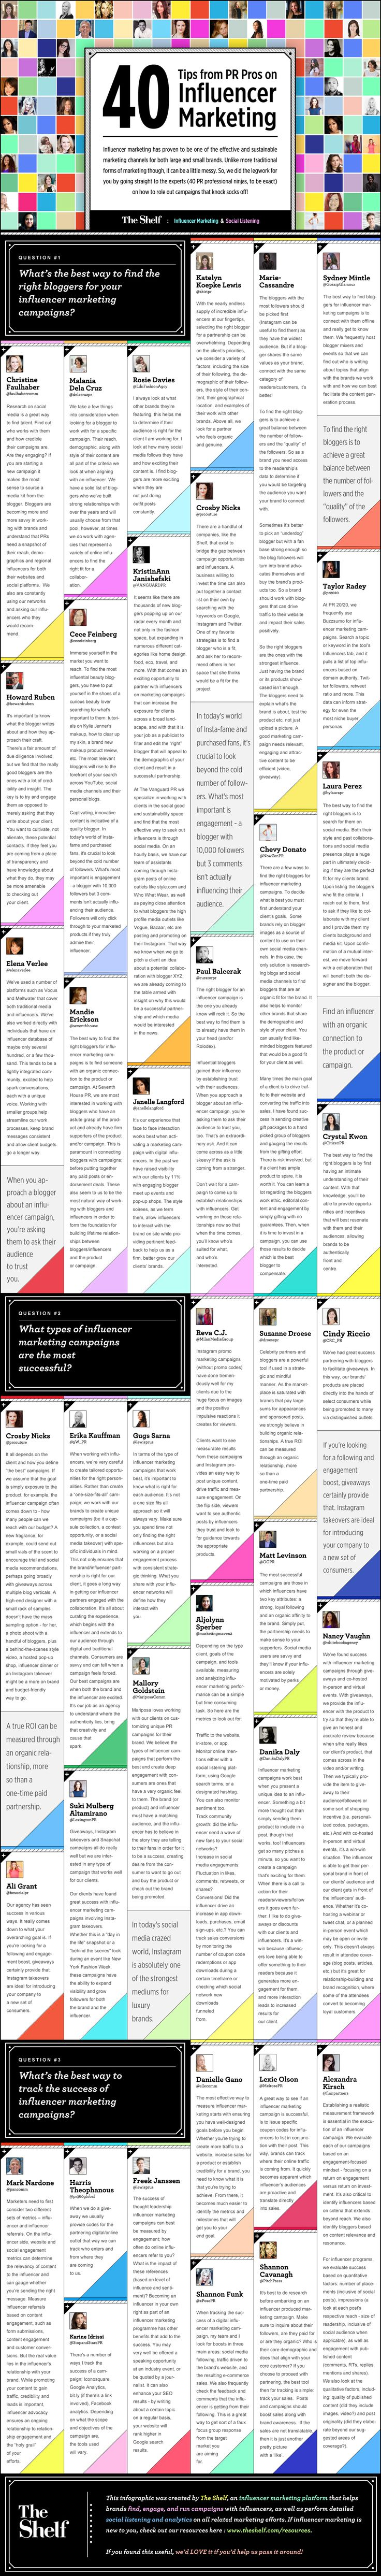 How To Run Influencer #Marketing Campaigns Like A Pro [INFOGRAPHIC] — The Shelf #upgrow